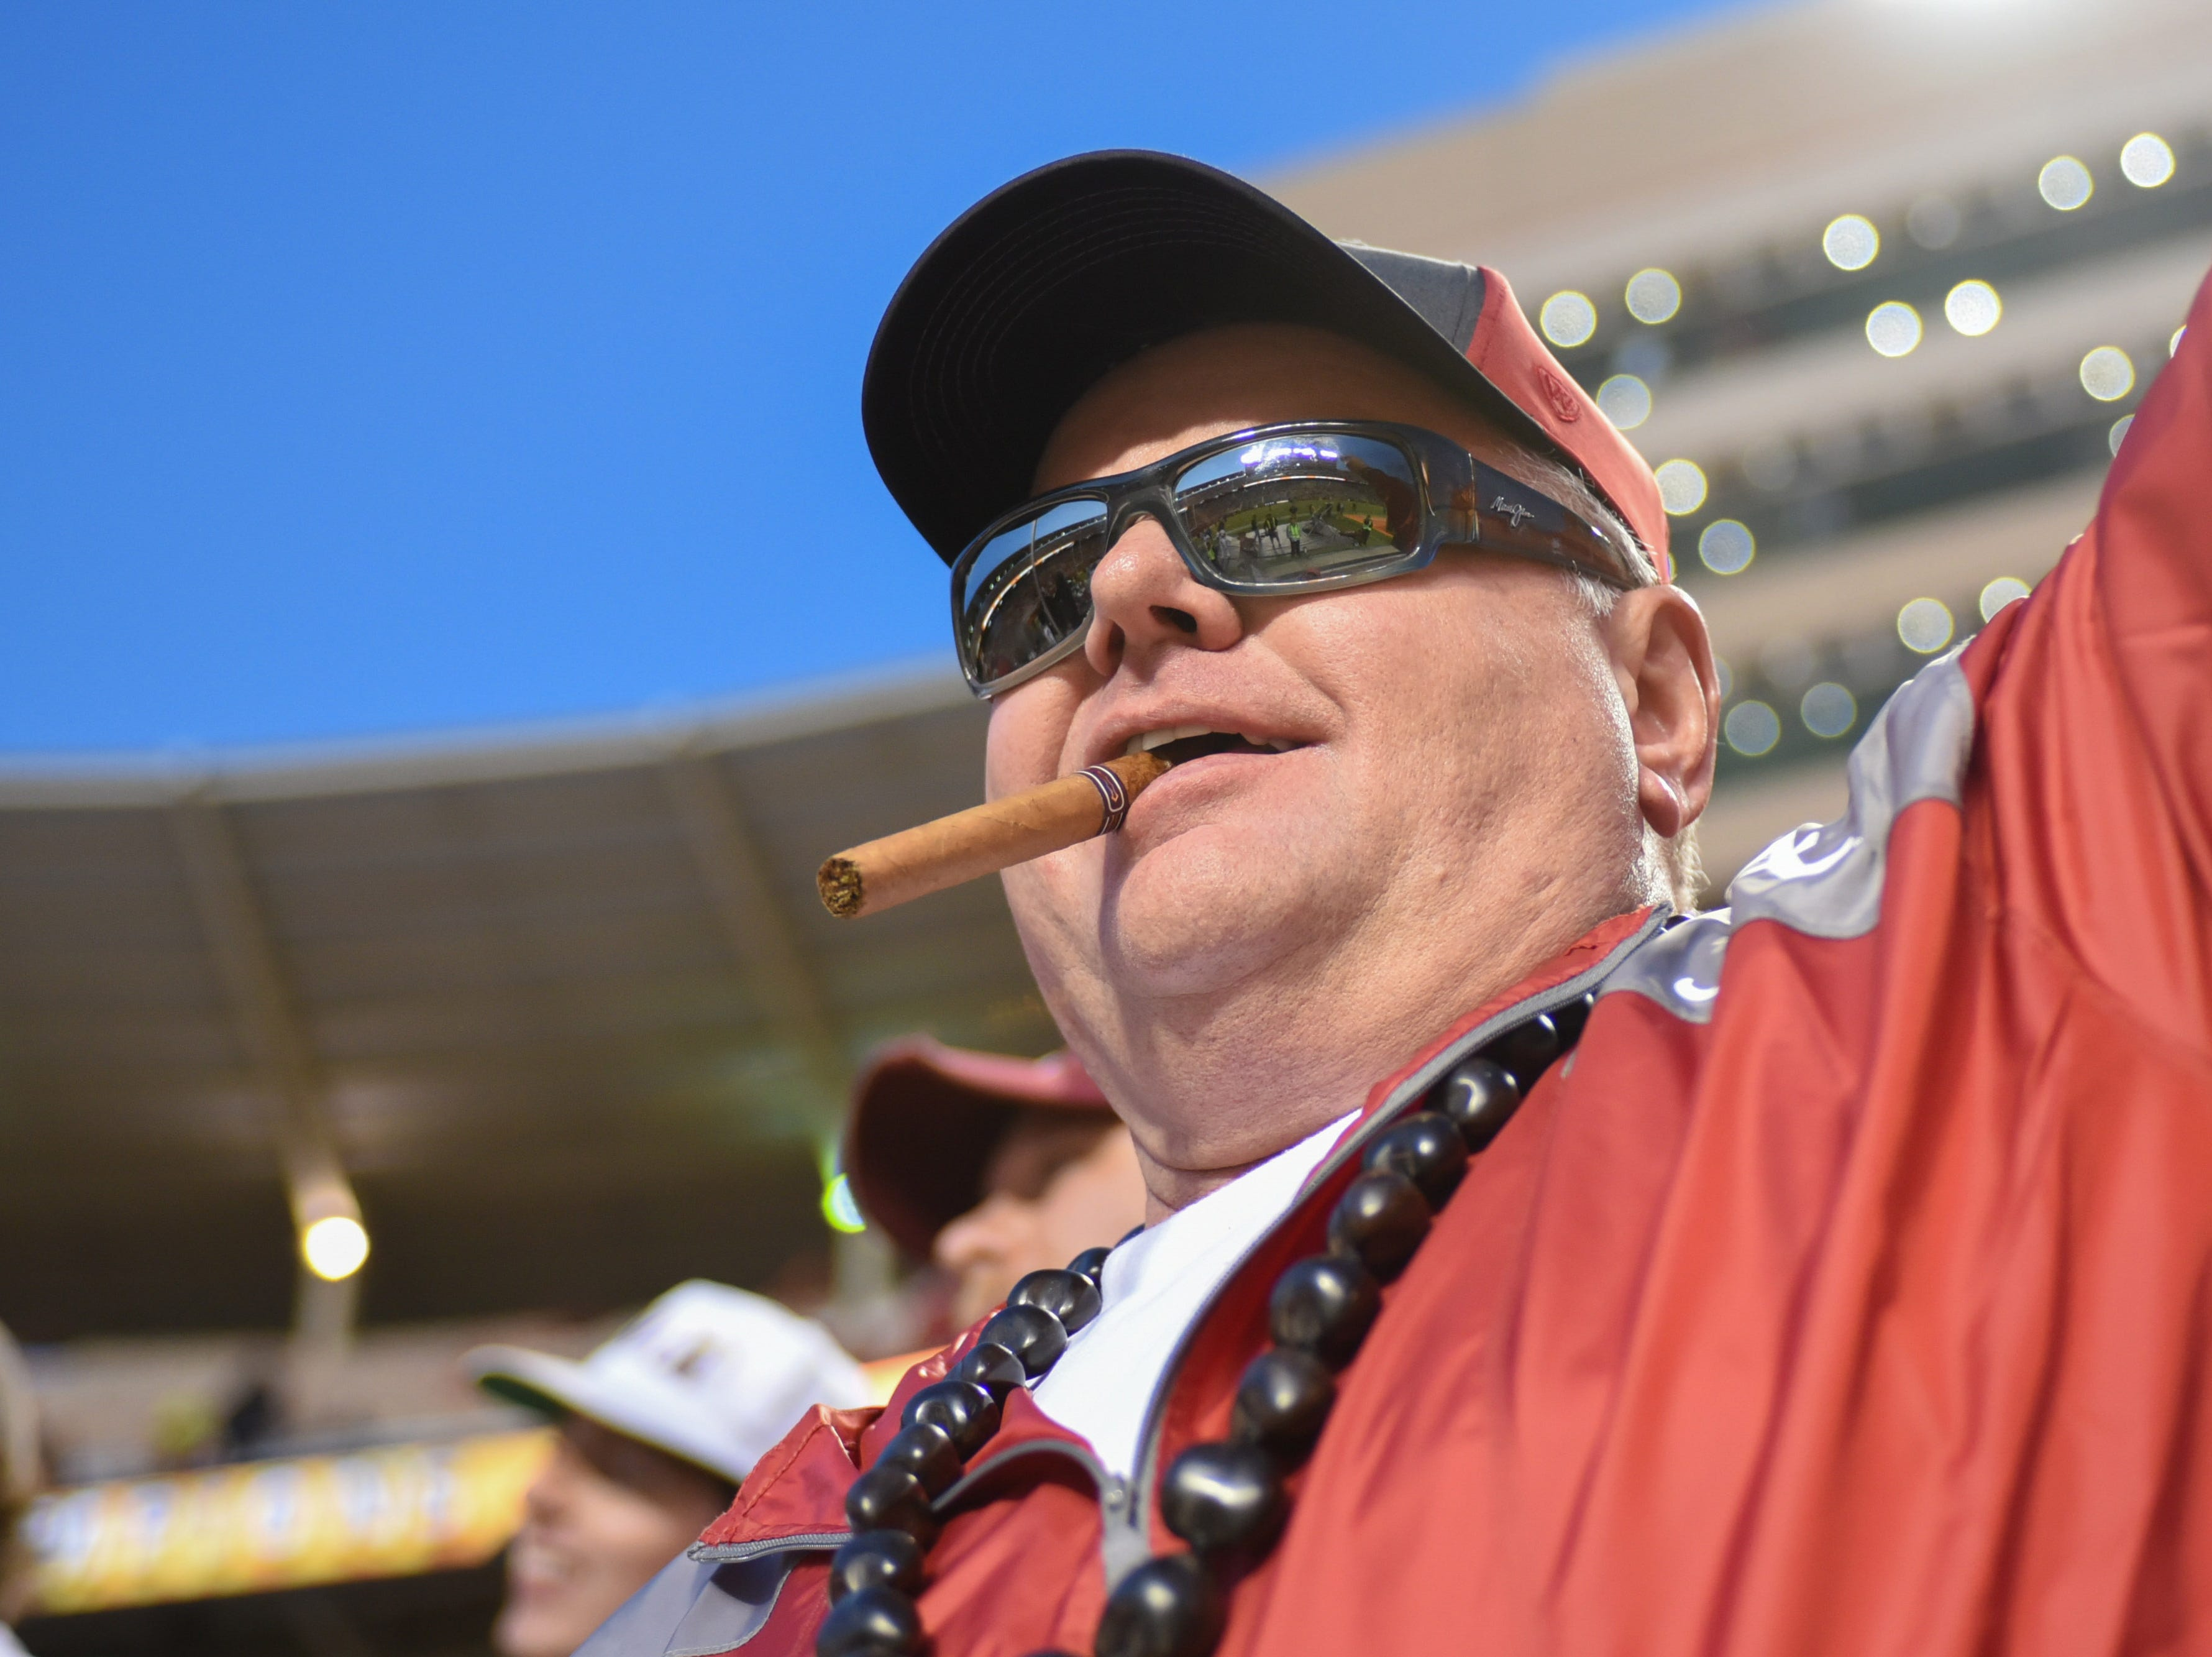 Oct 20, 2018; Knoxville, TN, USA; An Alabama Crimson Tide fan celebrates with a cigar after the game against the Tennessee Volunteers at Neyland Stadium. Alabama won 58 to 21. Mandatory Credit: Randy Sartin-USA TODAY Sports